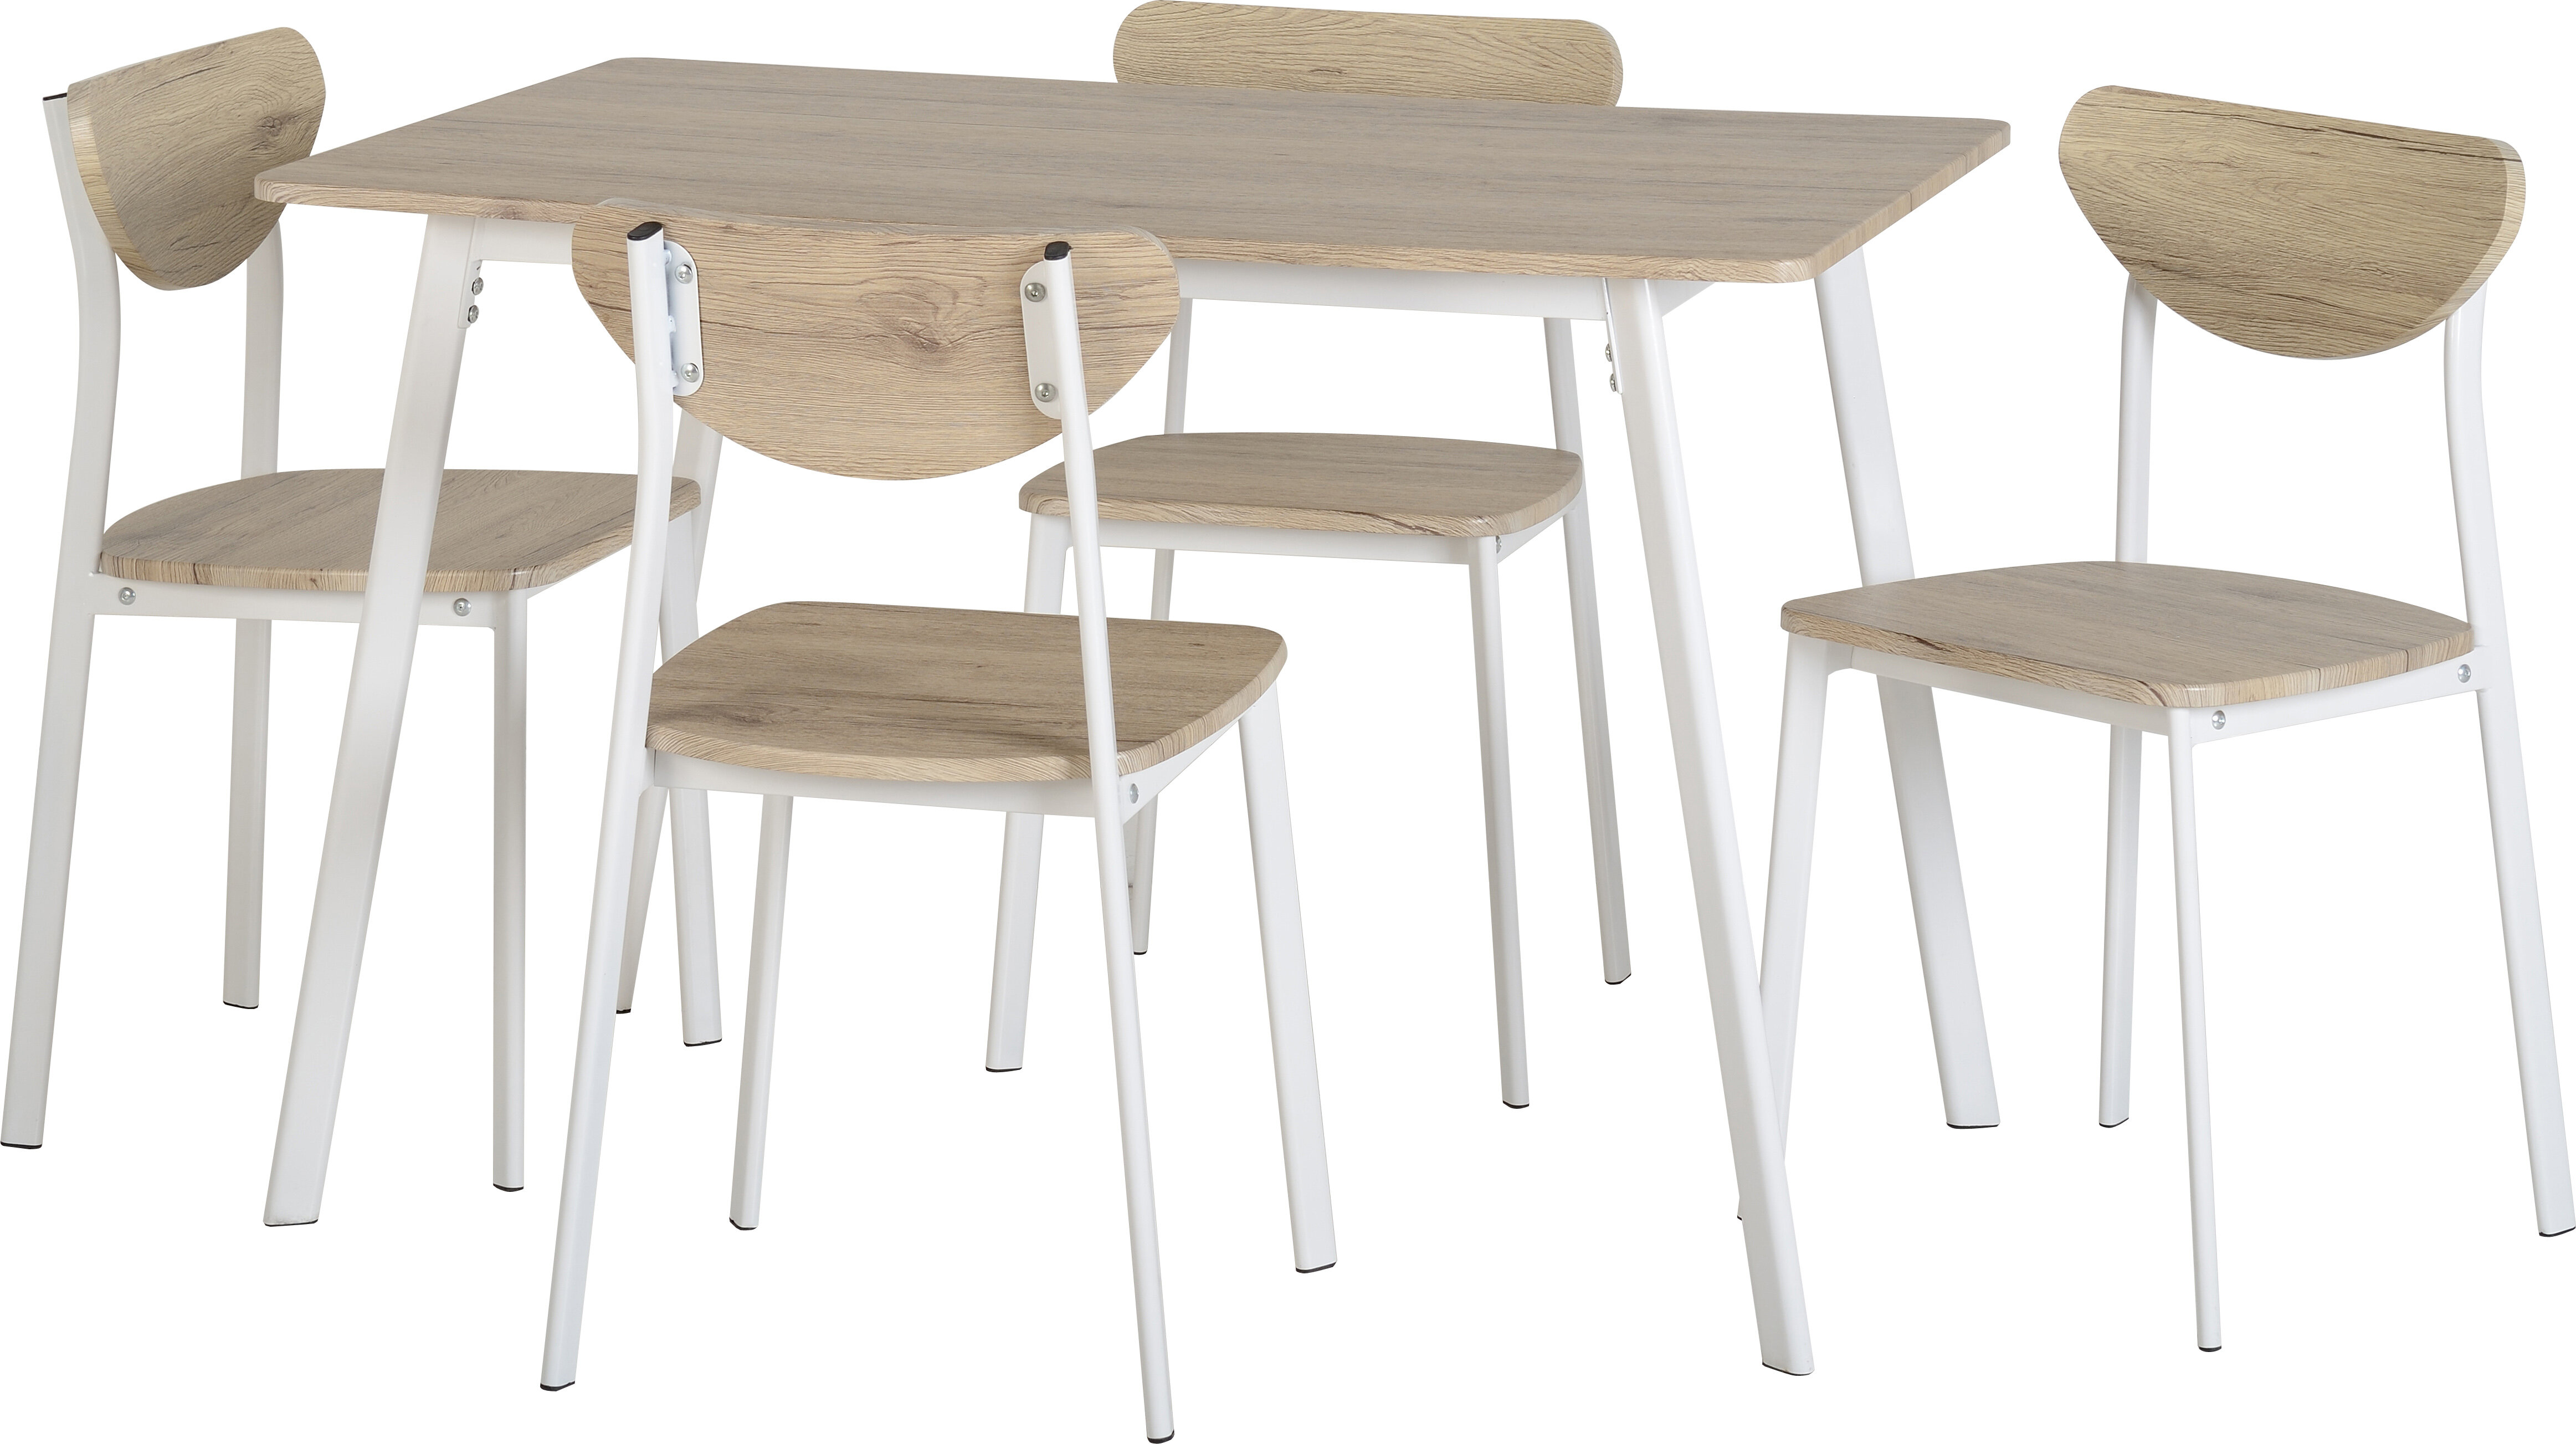 Fjørde & Co Amanda Dining Table and 4 Chairs & Reviews | Wayfair.co.uk